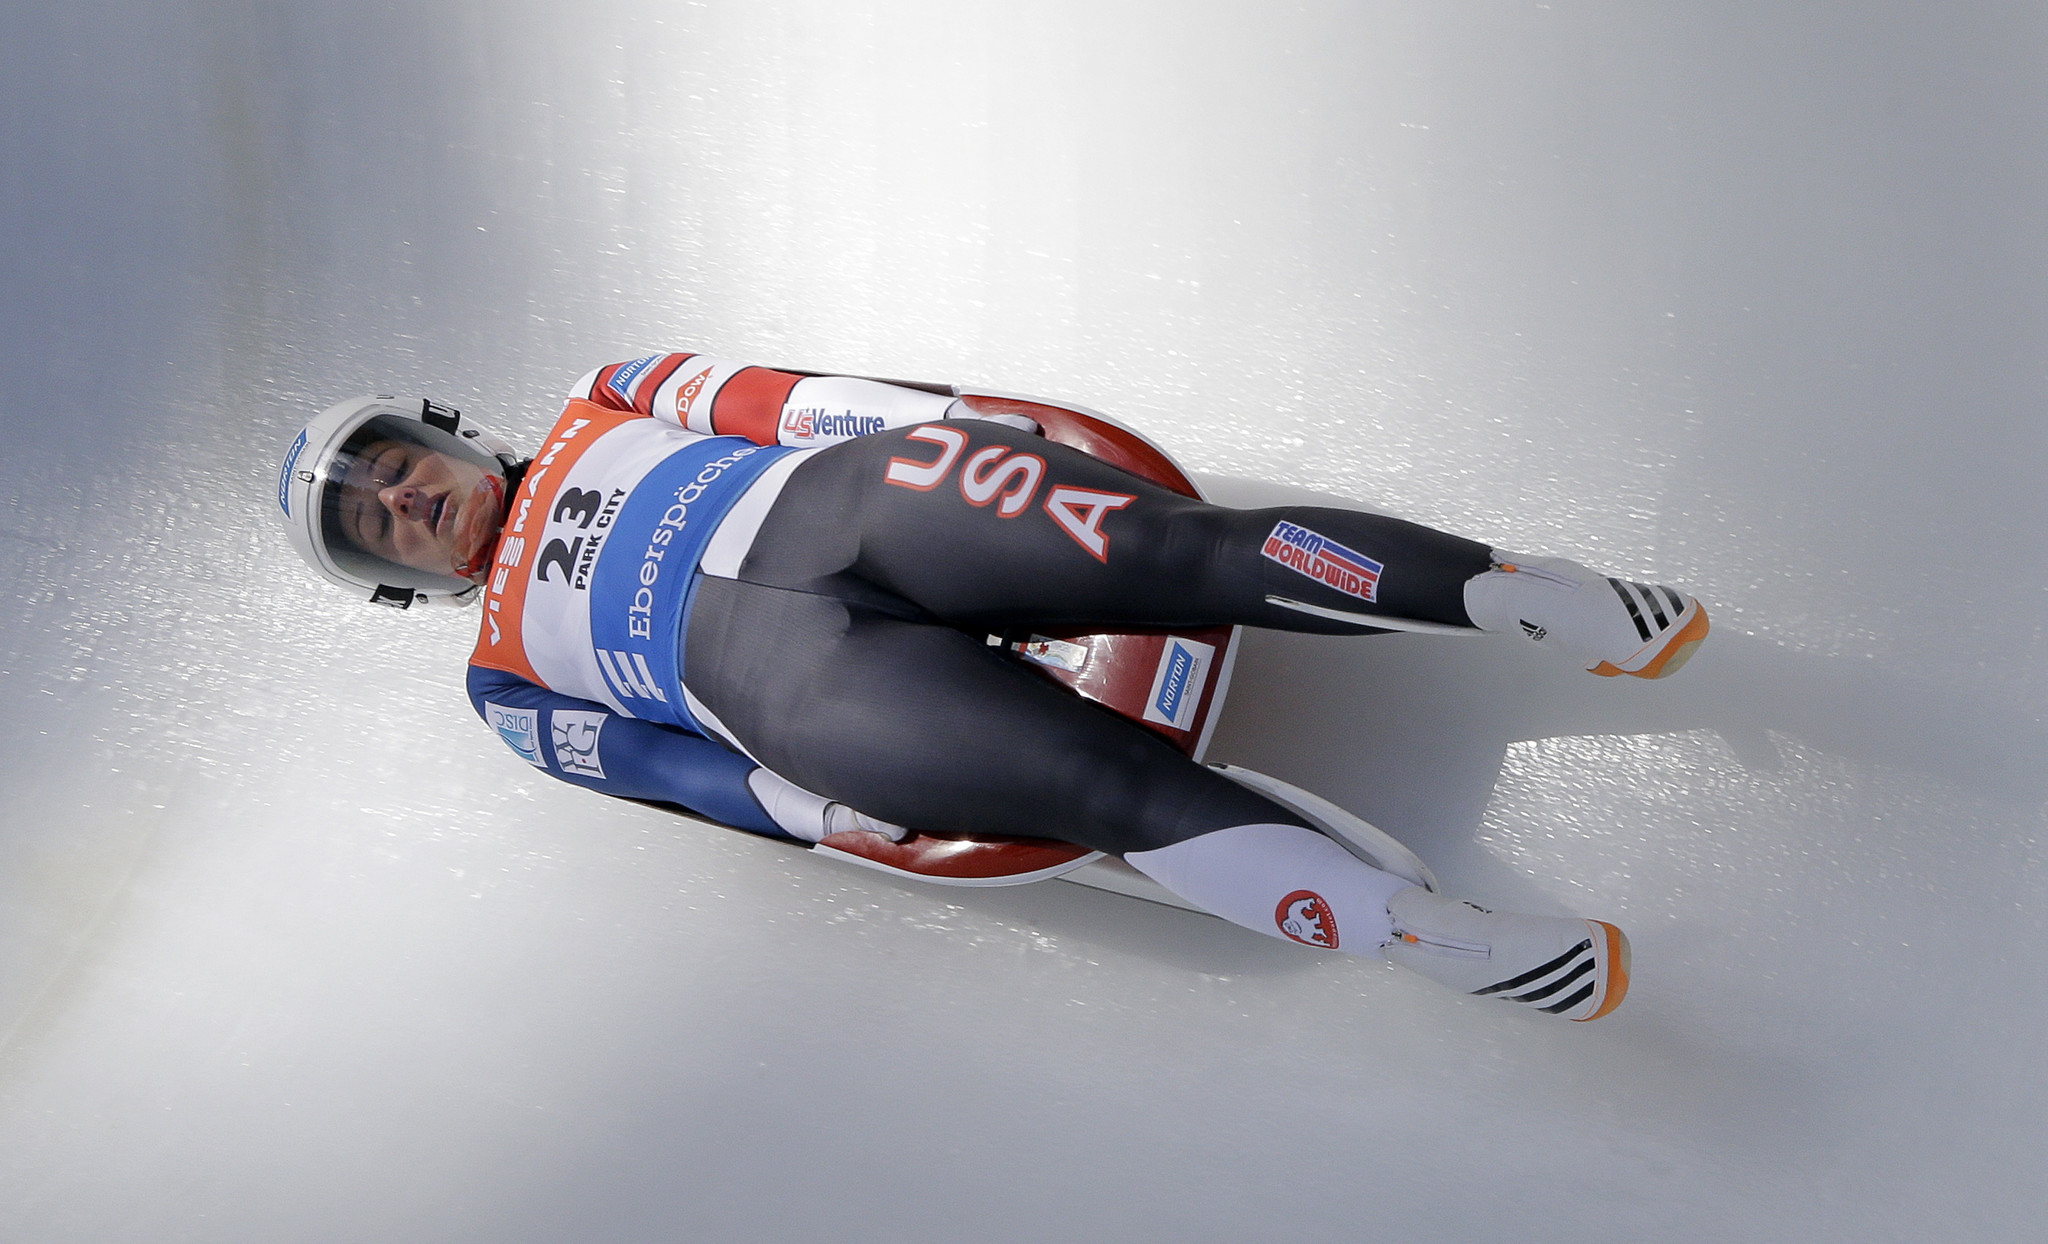 athletes from connecticut compete at the 2018 winter